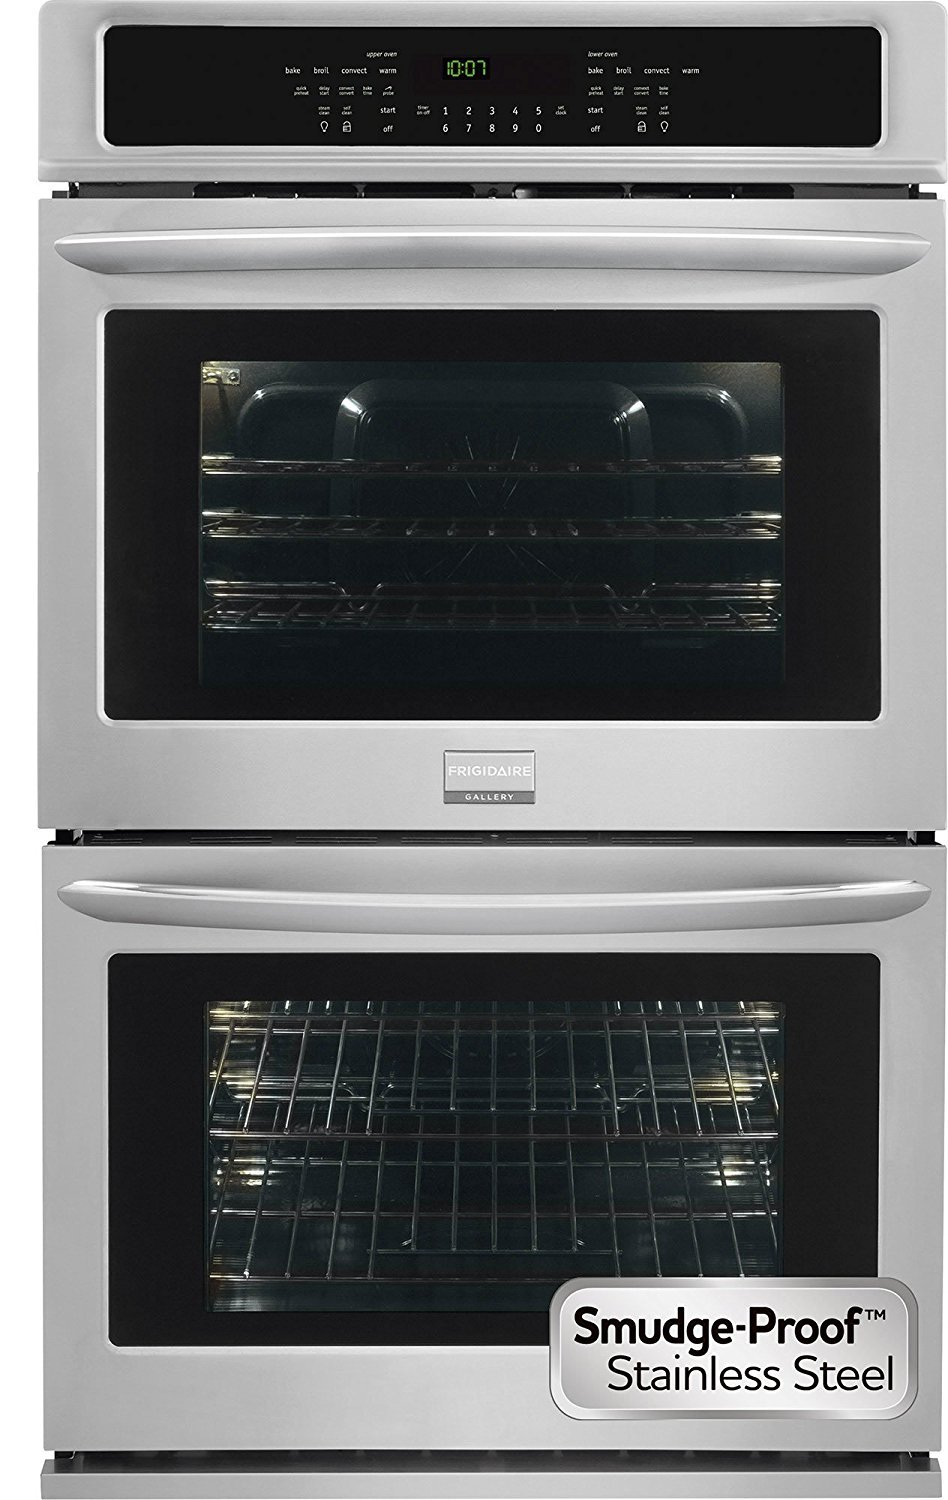 Frigidaire Gallery Collection 30'' Double ELectric Wall Oven with 9.2 Cu Ft. Capacity and True Convection in Smudge-Proof Stainless Steel